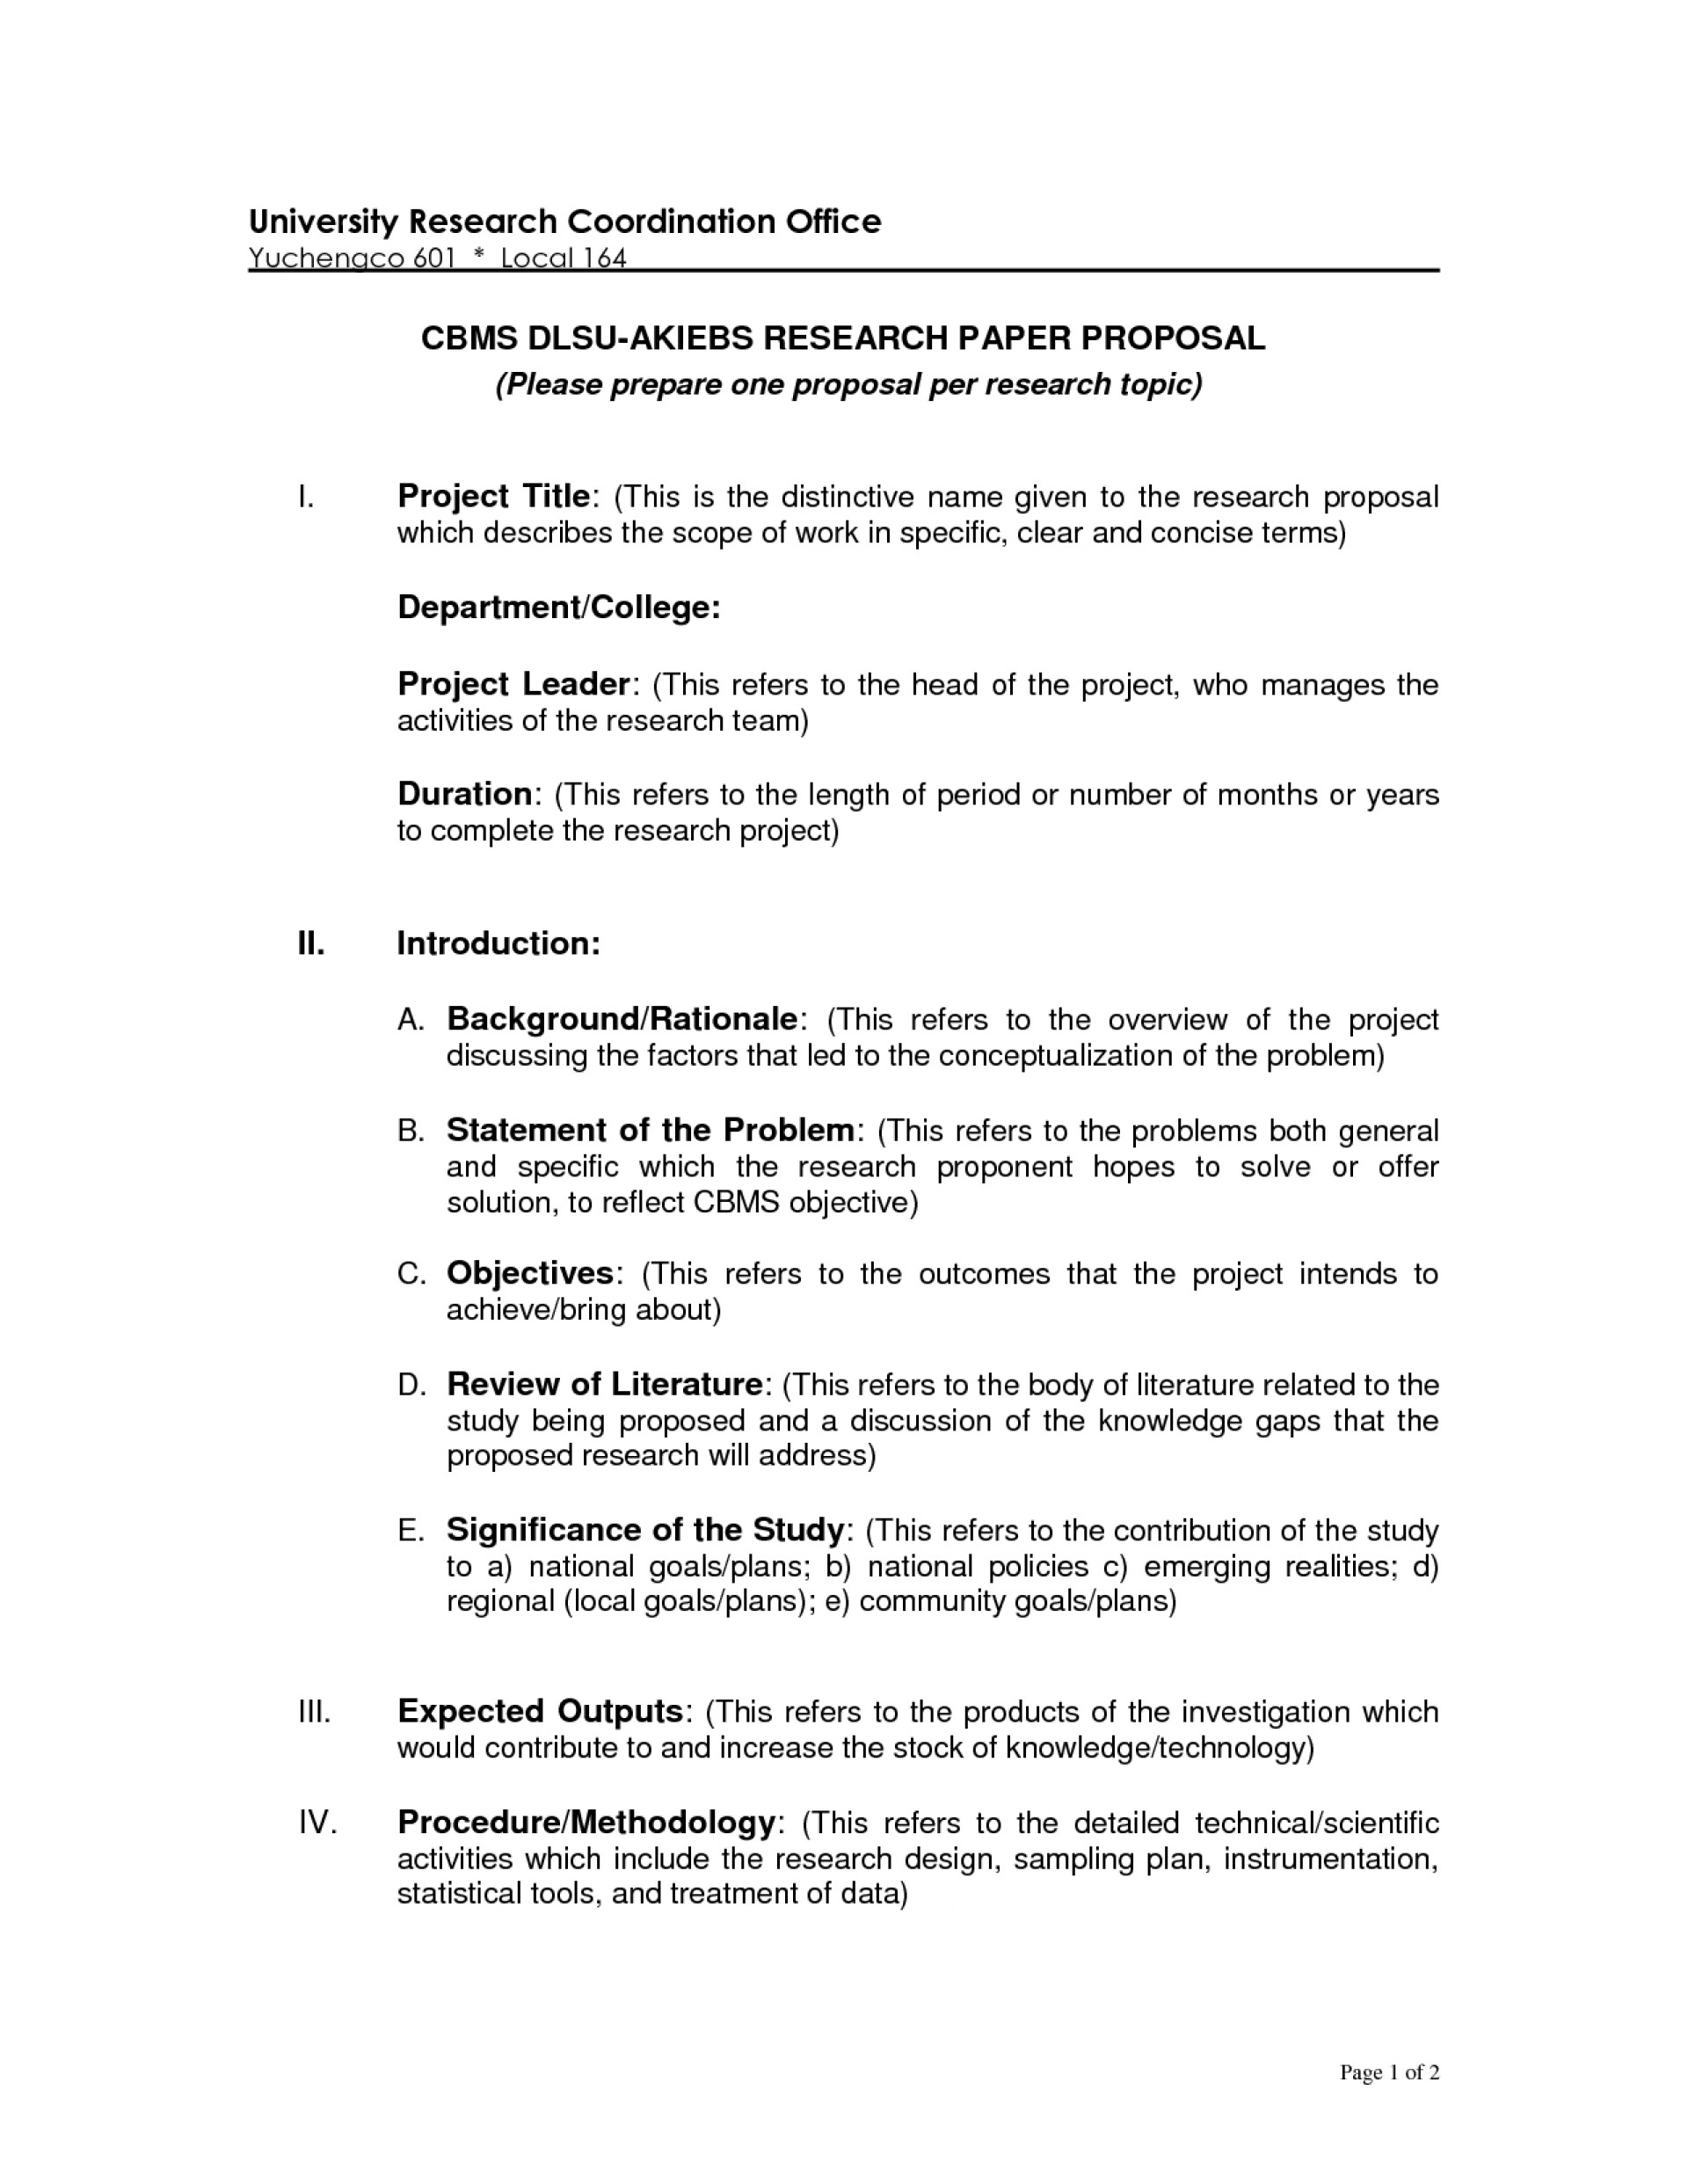 005 Research Paper Proposal Ideas Of Phd Format Example Essay Sample Appendix Amazing Mla 1920